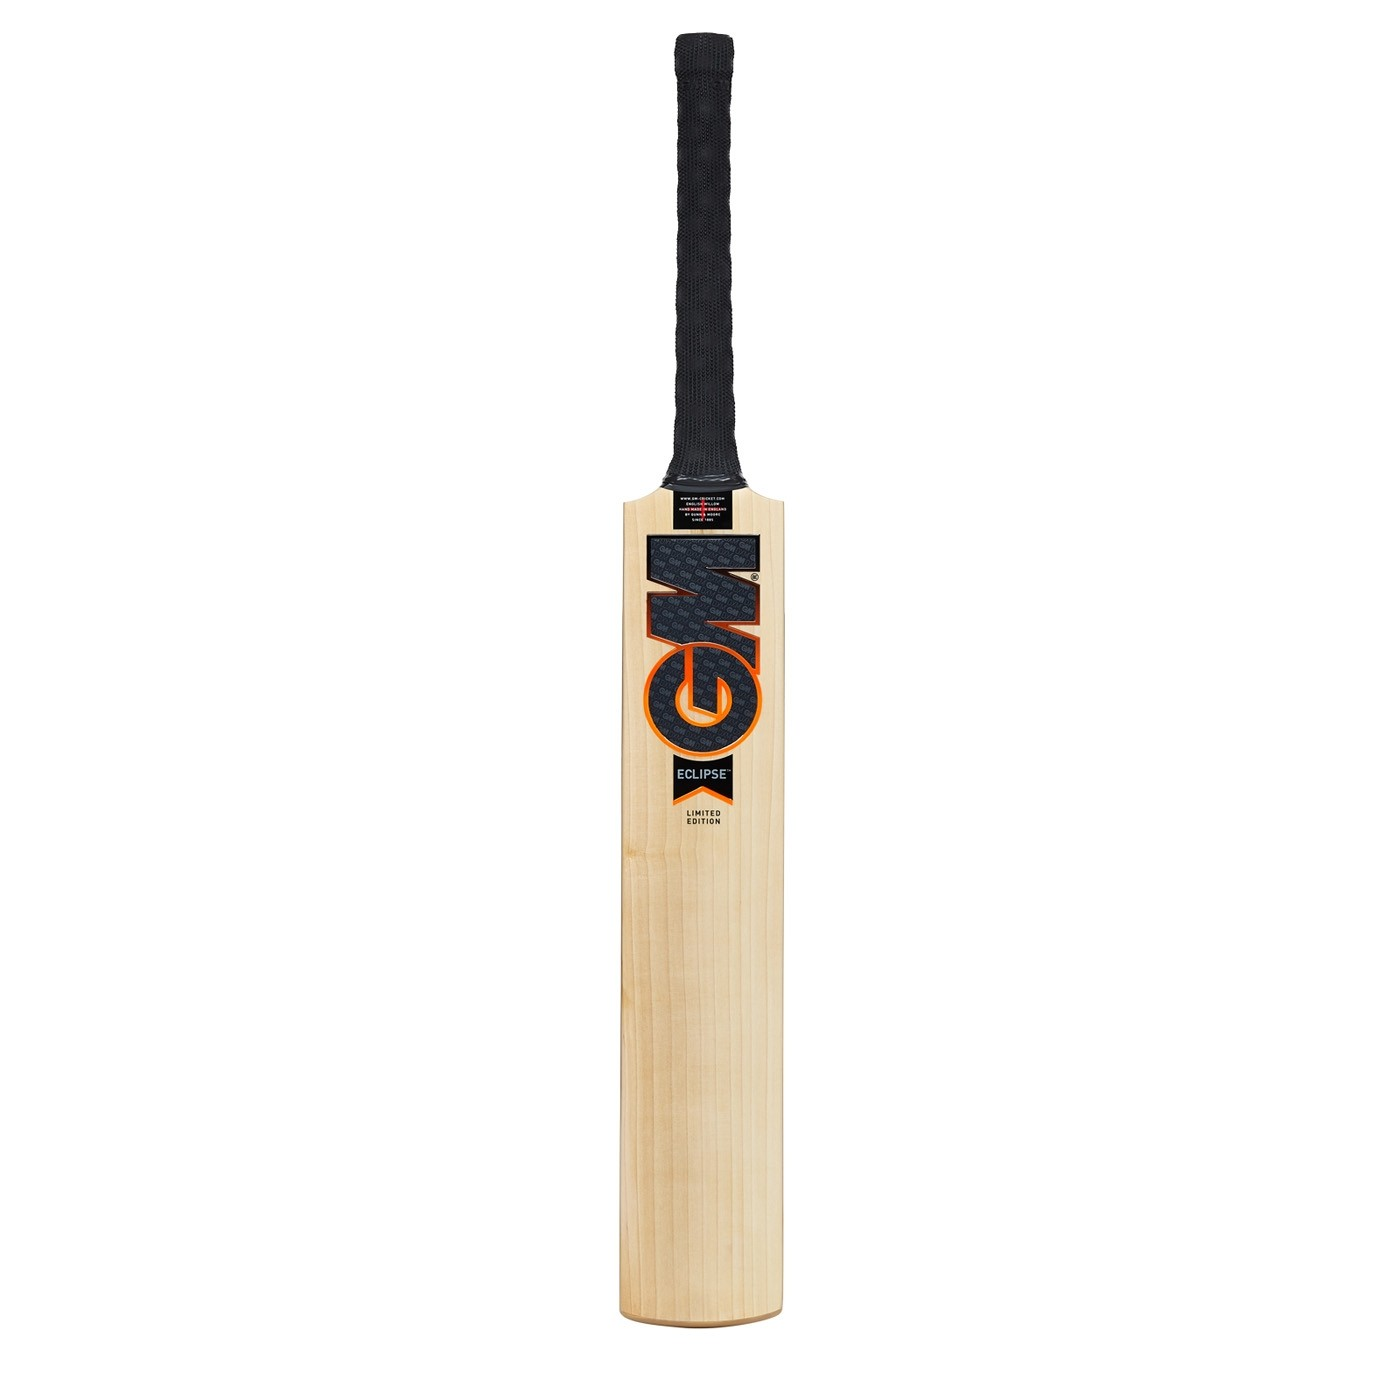 2020 Gunn and Moore Eclipse DXM 404 Cricket Bat